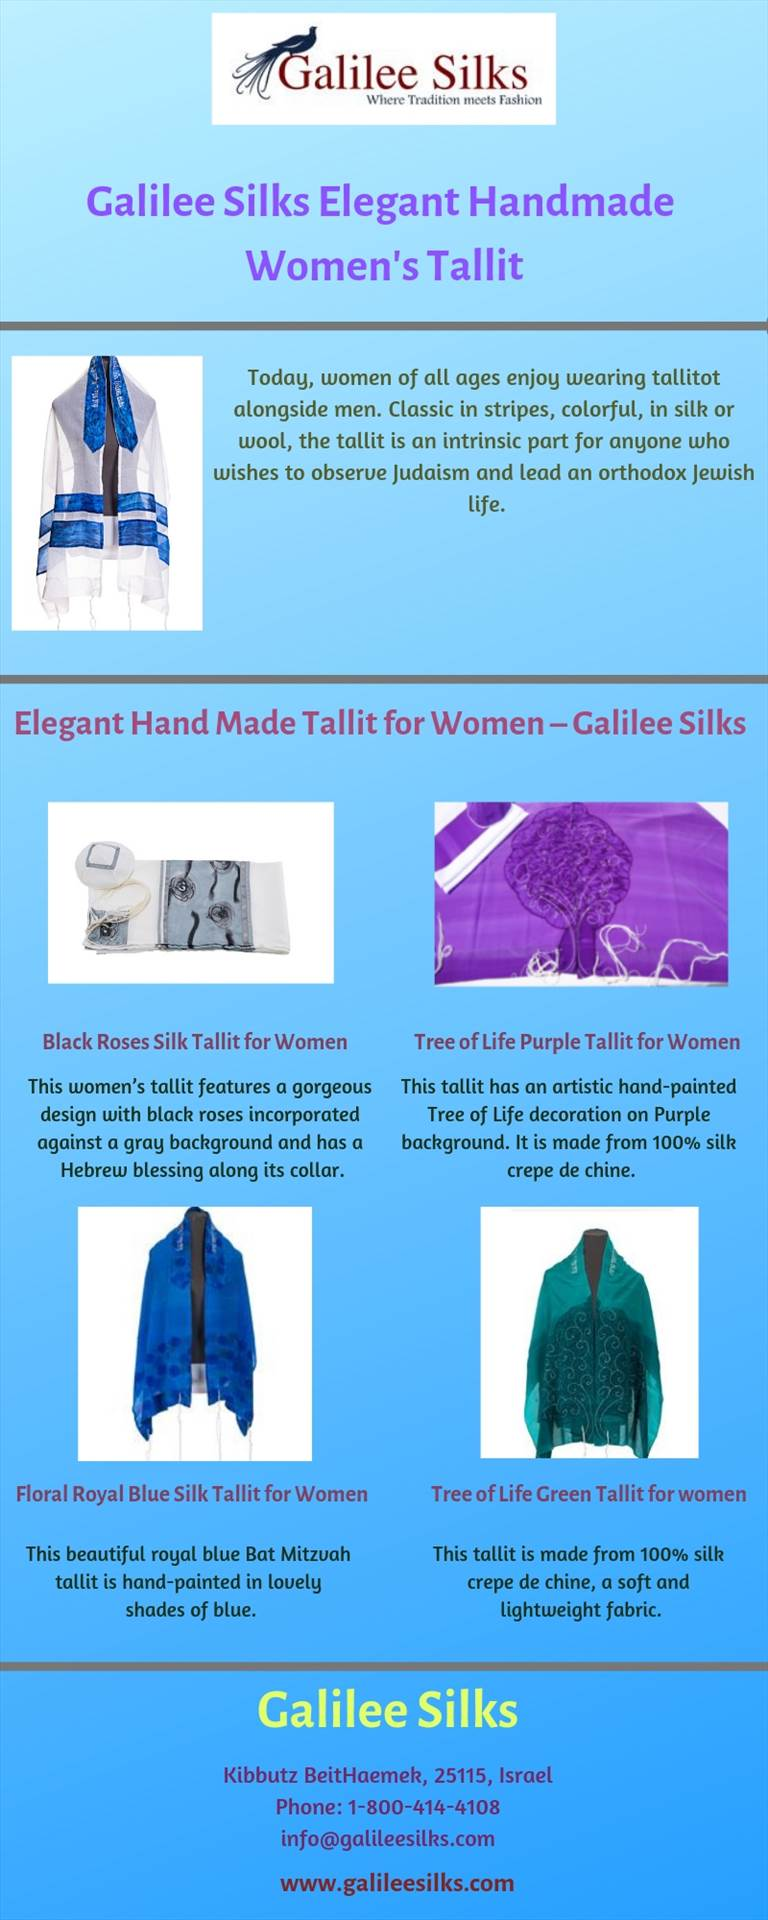 Galilee Silks Elegant Handmade Women's Tallit.jpg With trending fashion and market demands, Galilee Silks brings the world's best women's tallit in the market. Our 100% authentic silk prayer shawls with its unique designs and patterns can make you stand out of the crowd. For more details, visit this link by amramrafi